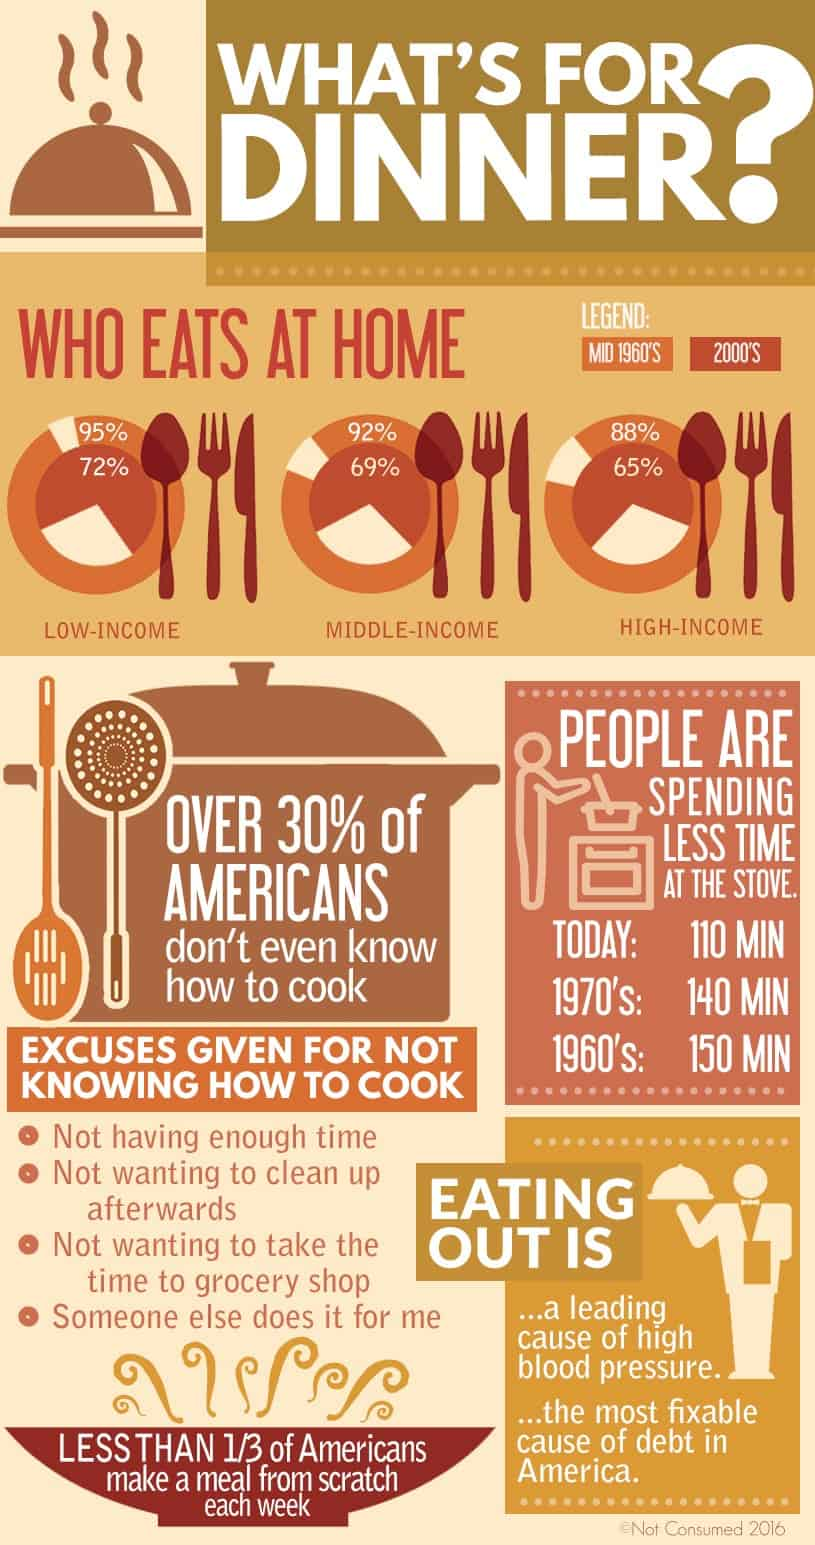 Thinking about going out to eat? Here's some interesting info.